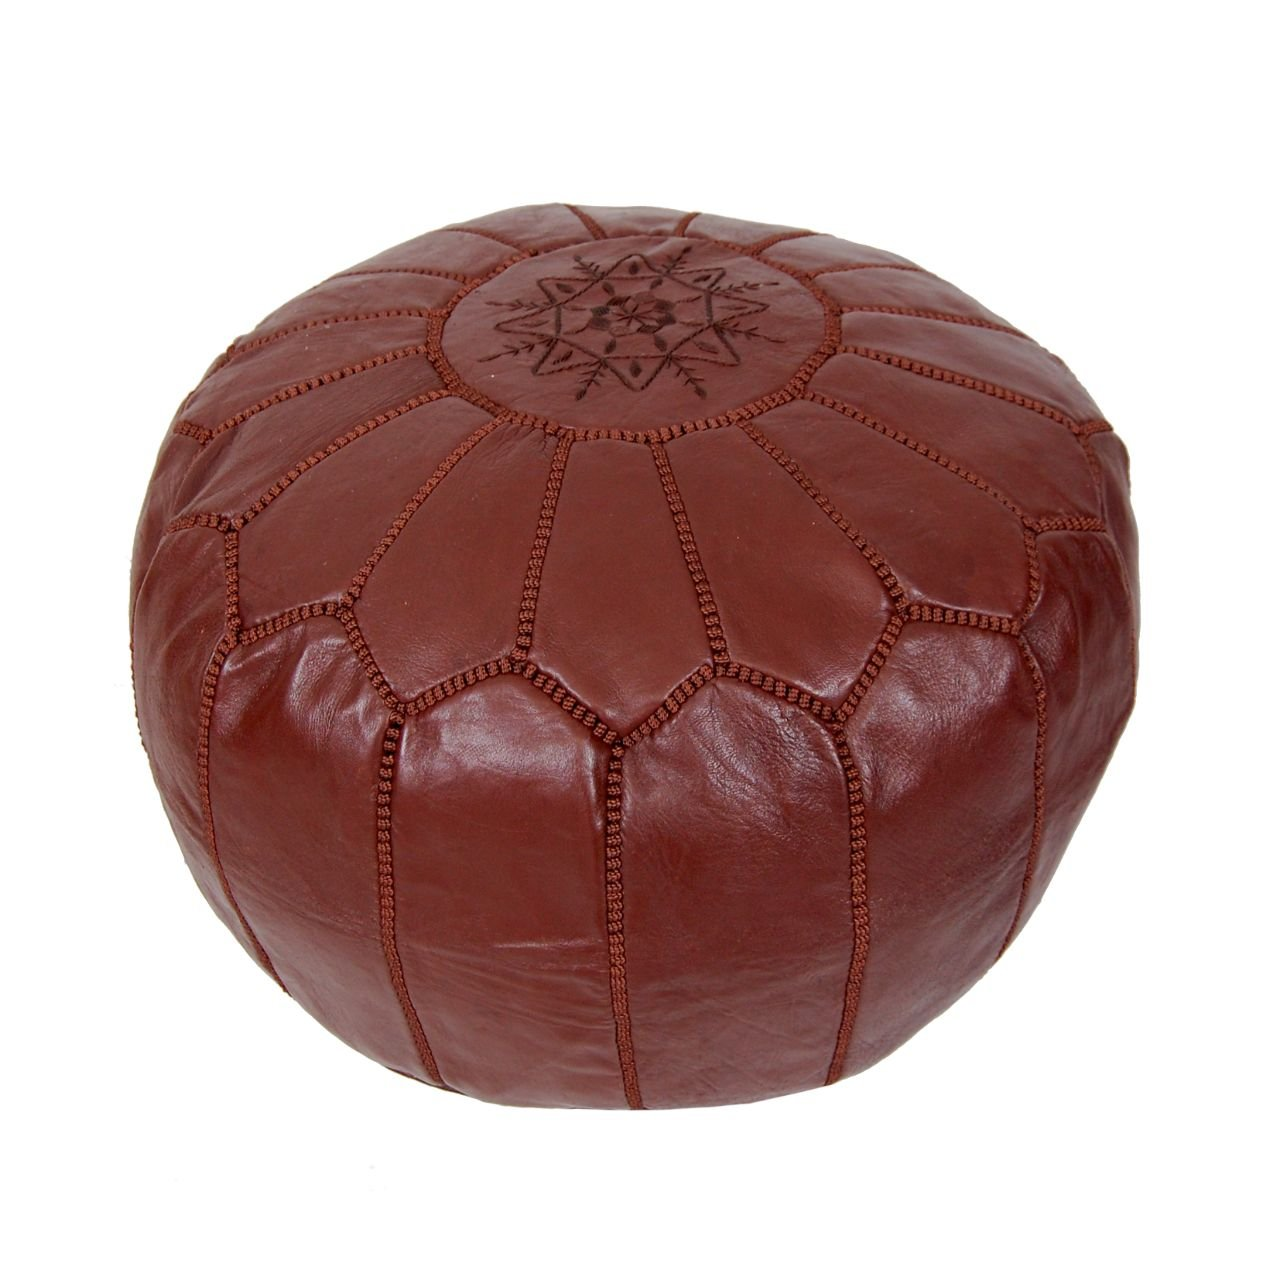 Moroccan Pouf Ottoman Footstool (Leather) Genuine Hand-Stitched Seating | Unstuffed |Living Room, Bedroom, Sitting Area | Chocolate Brown | Exclusive Designs